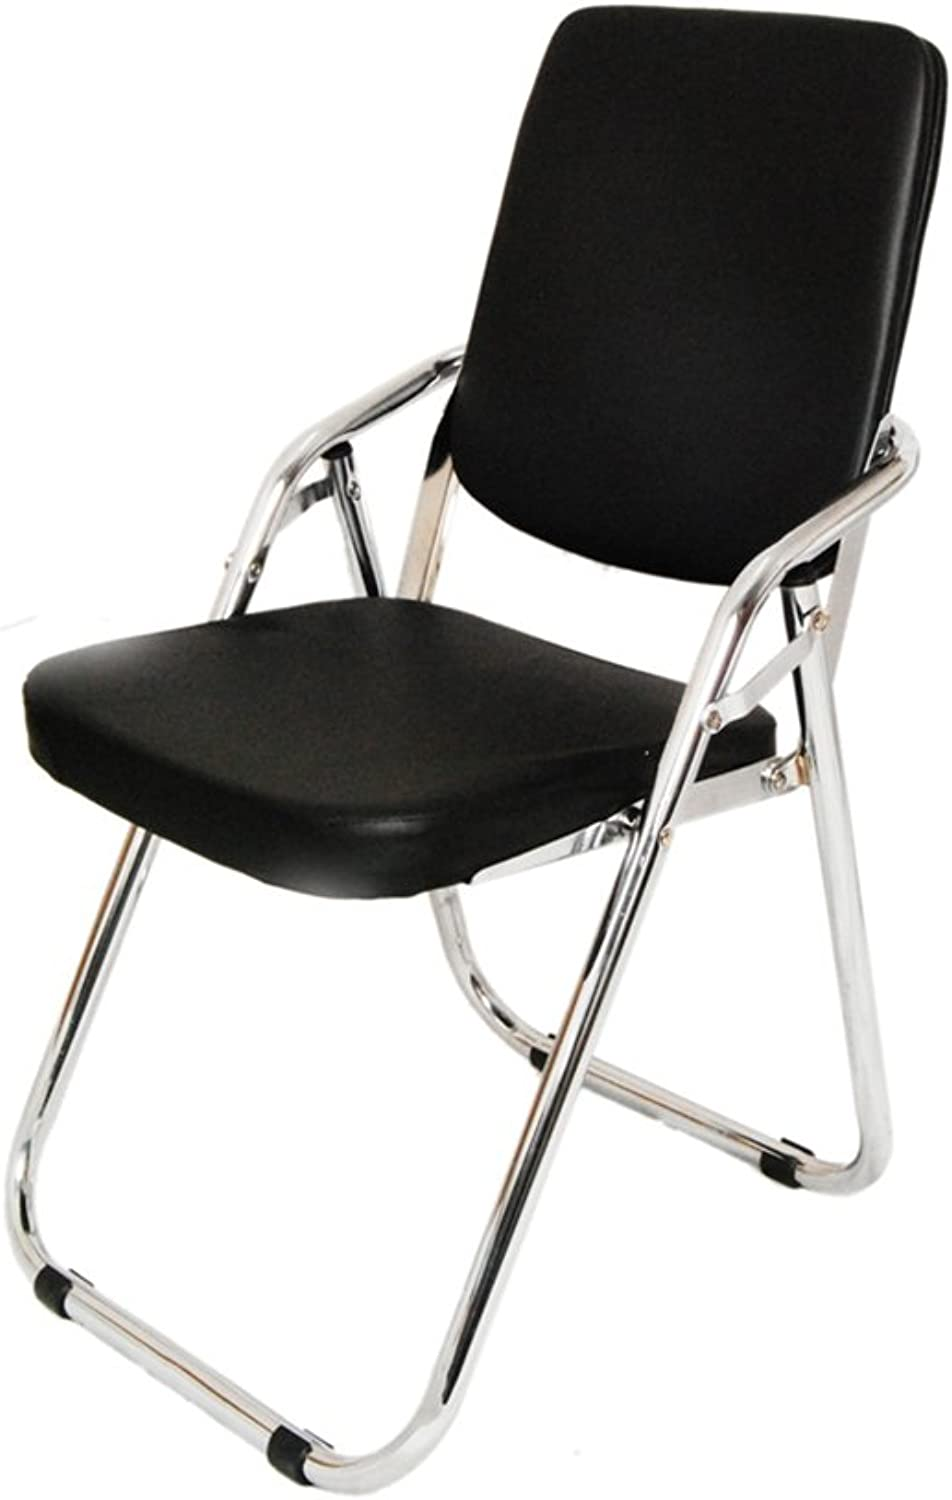 Folding Chair high Chair Office Chair Conference Chair Staff Chair Thickened Cushion Kitchen Furniture (color   Black)